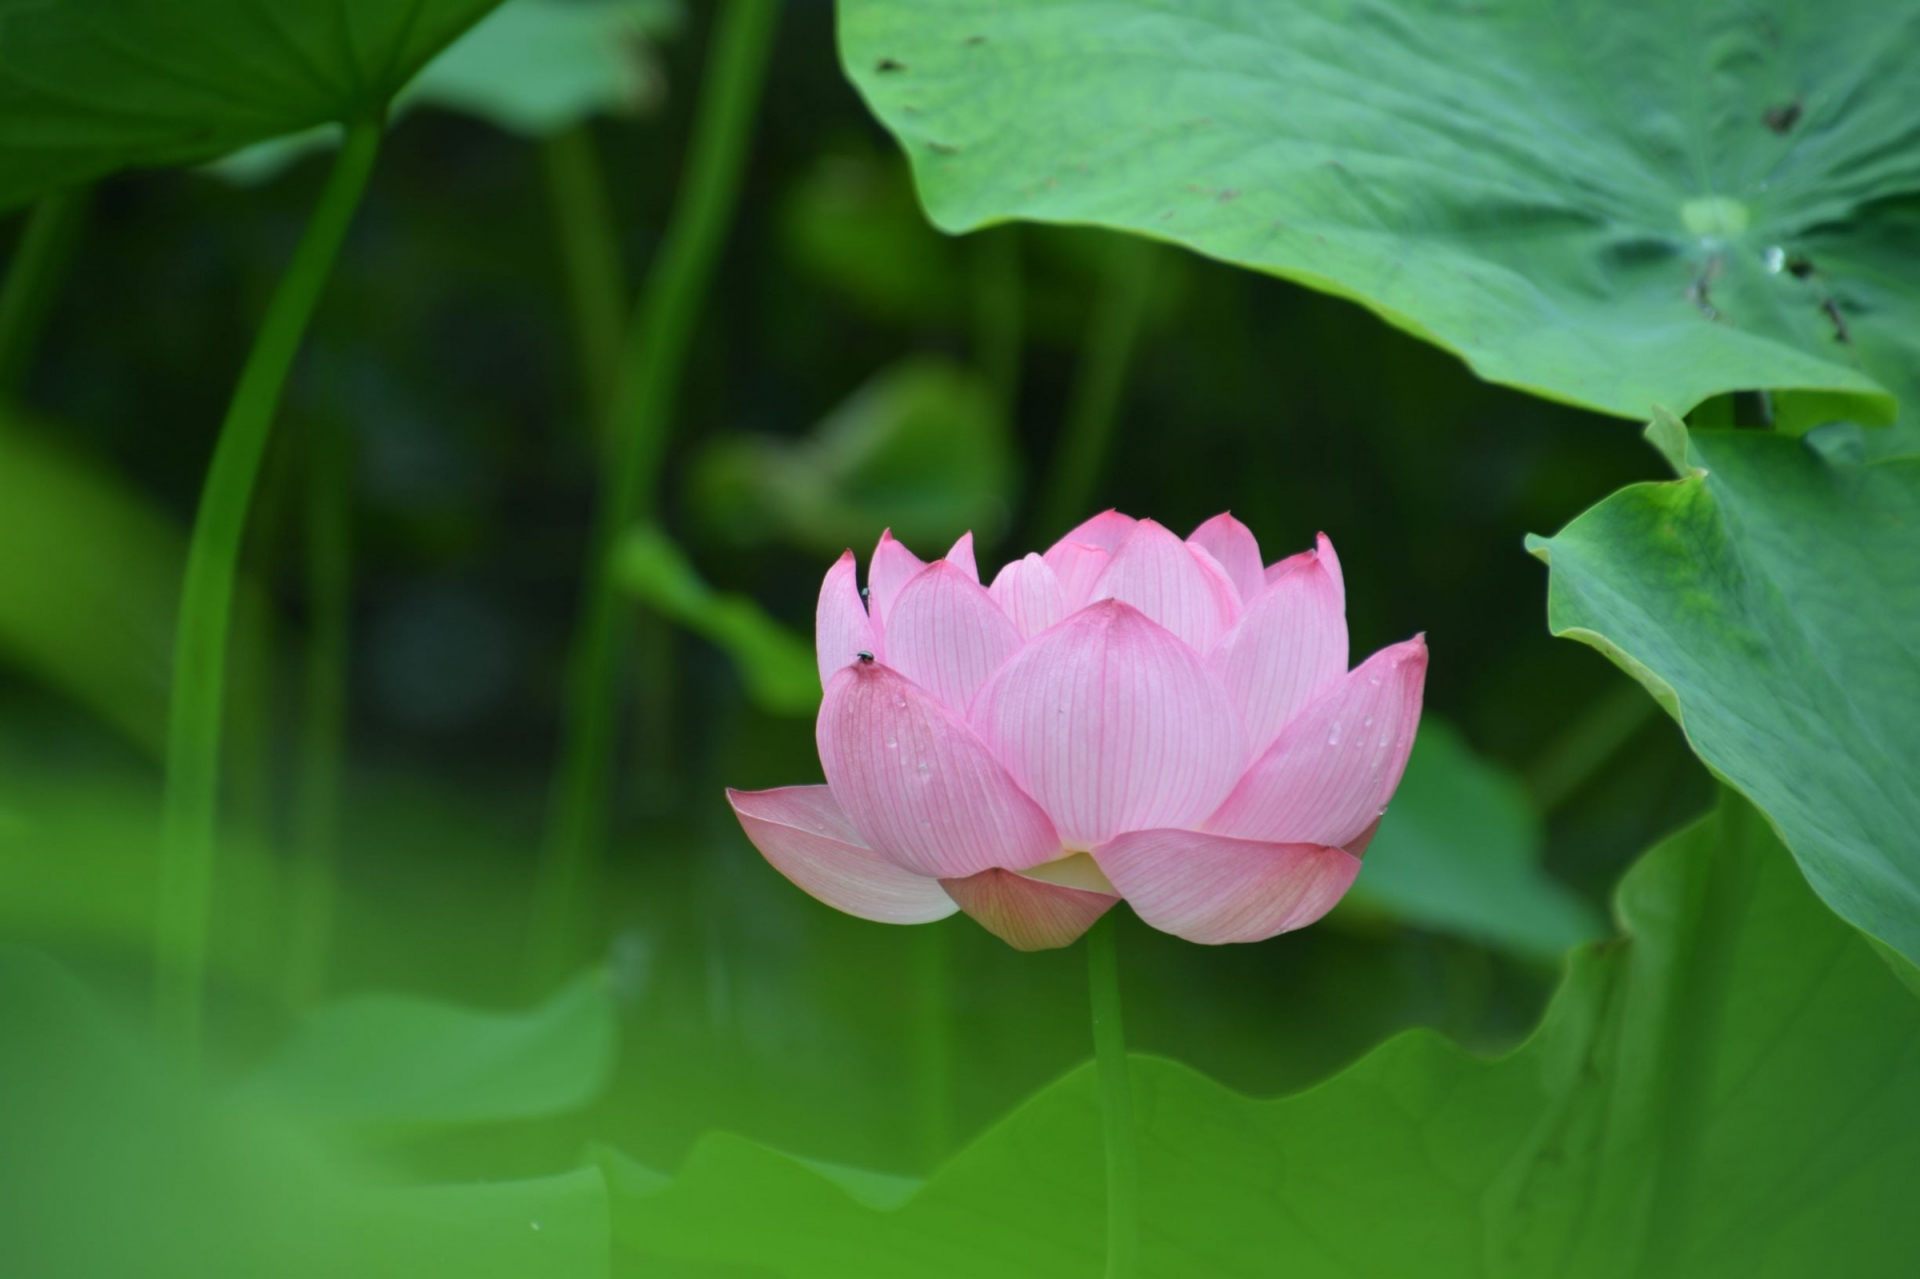 小田原城南堀のハス(The lotus of Odawaracastle Minamibori)